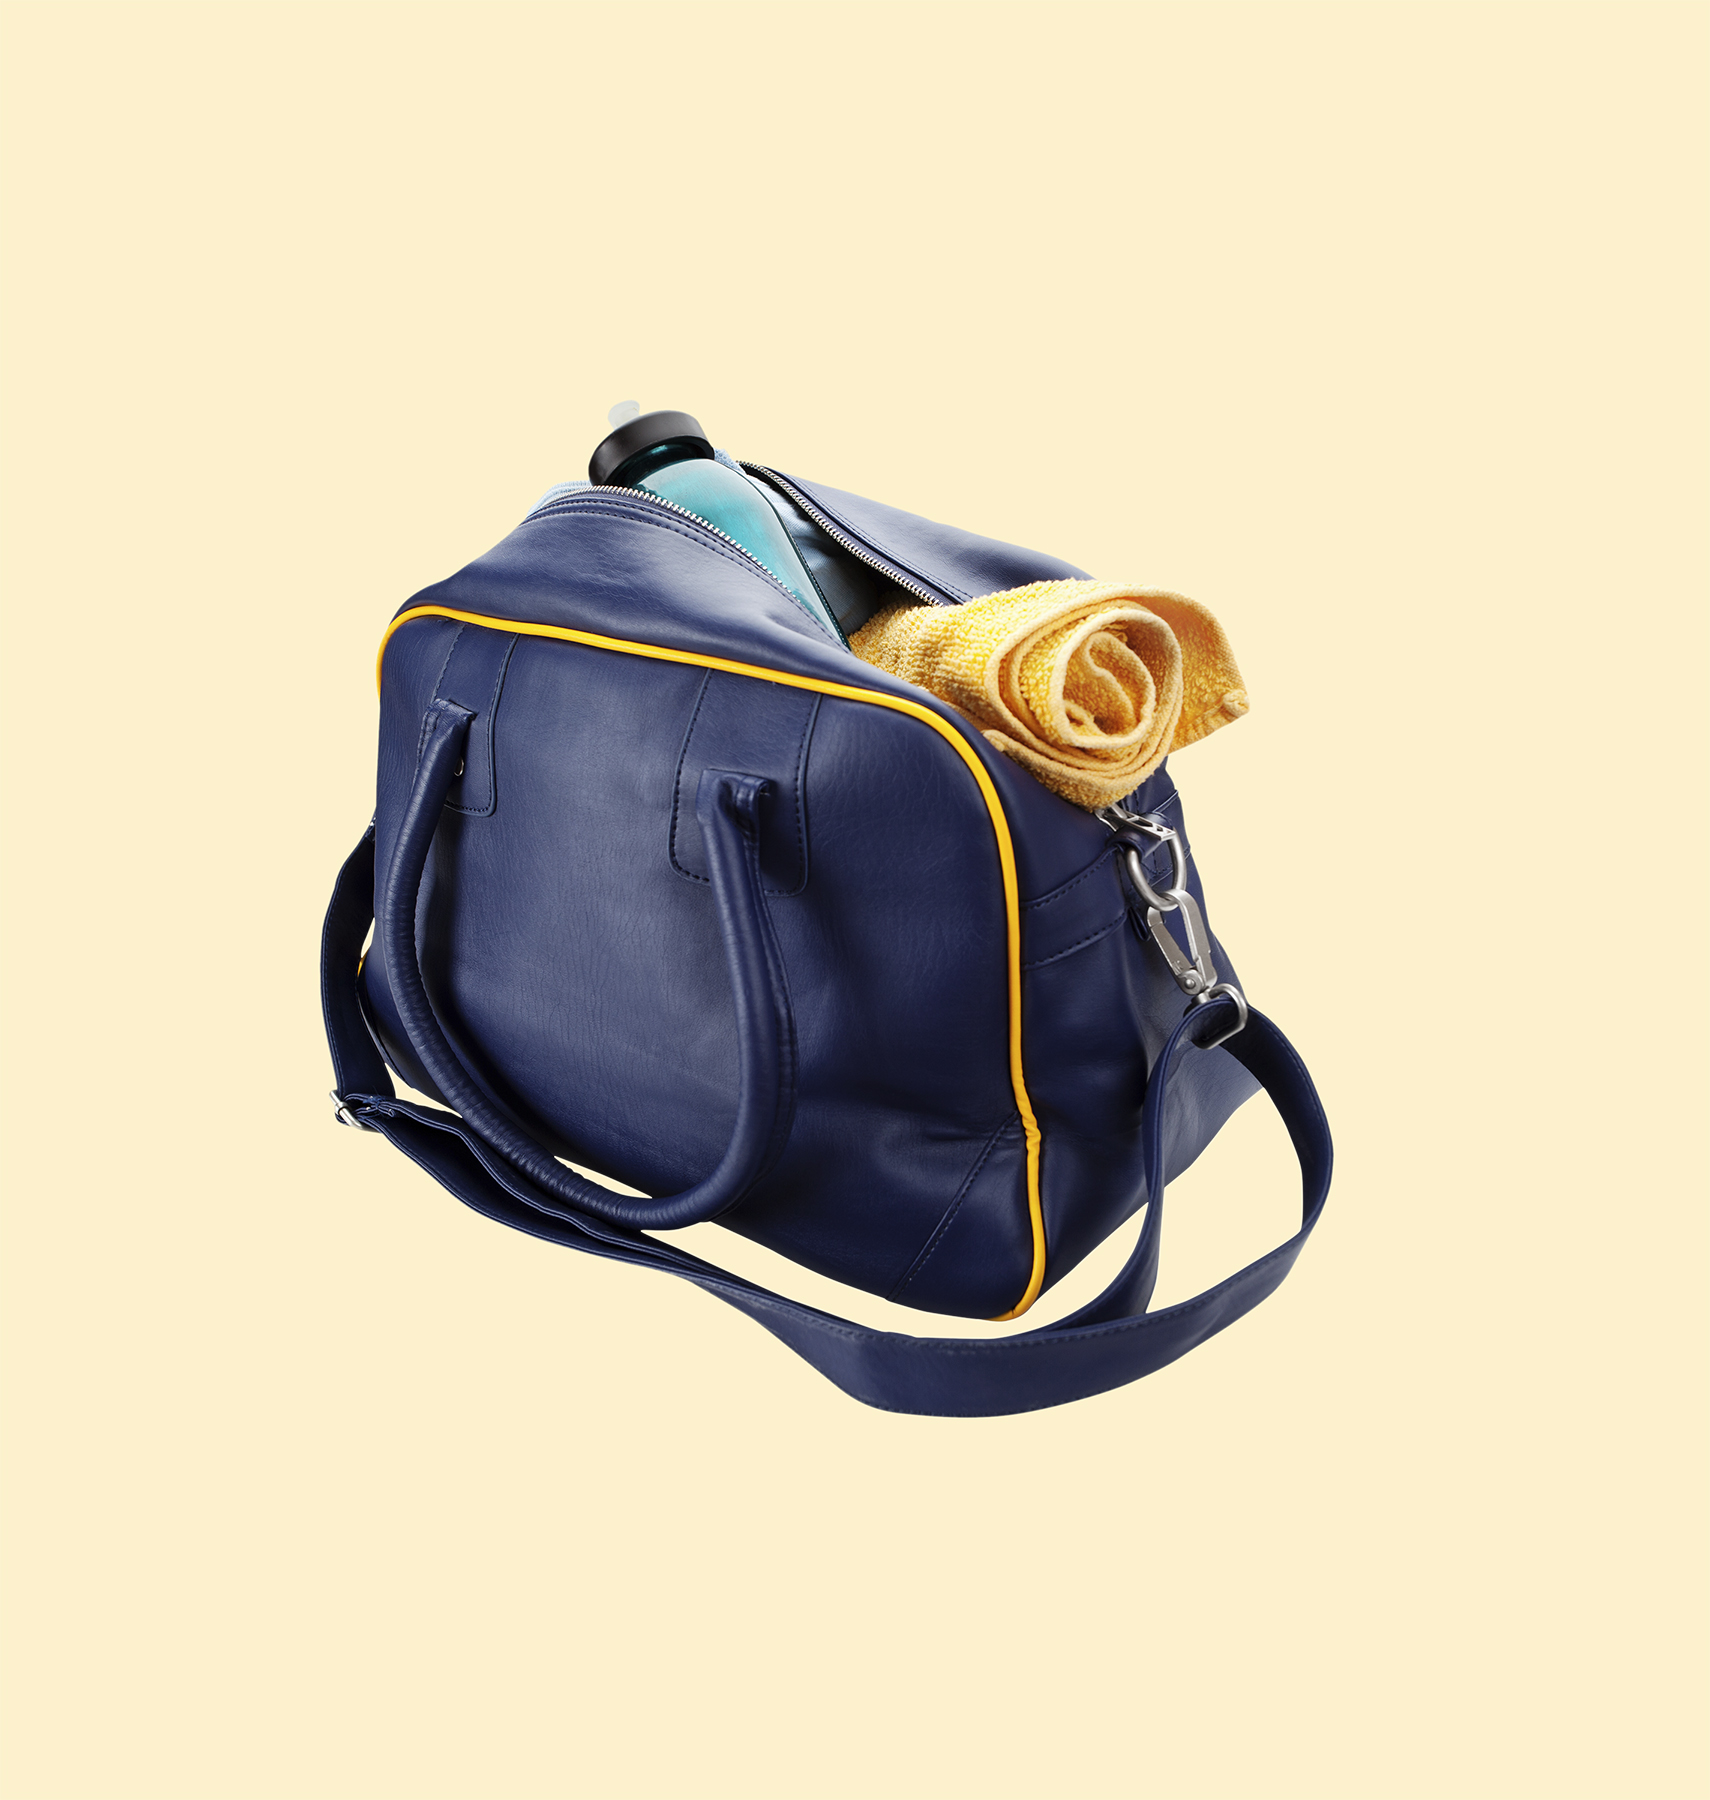 Blue gym bag with yellow towel